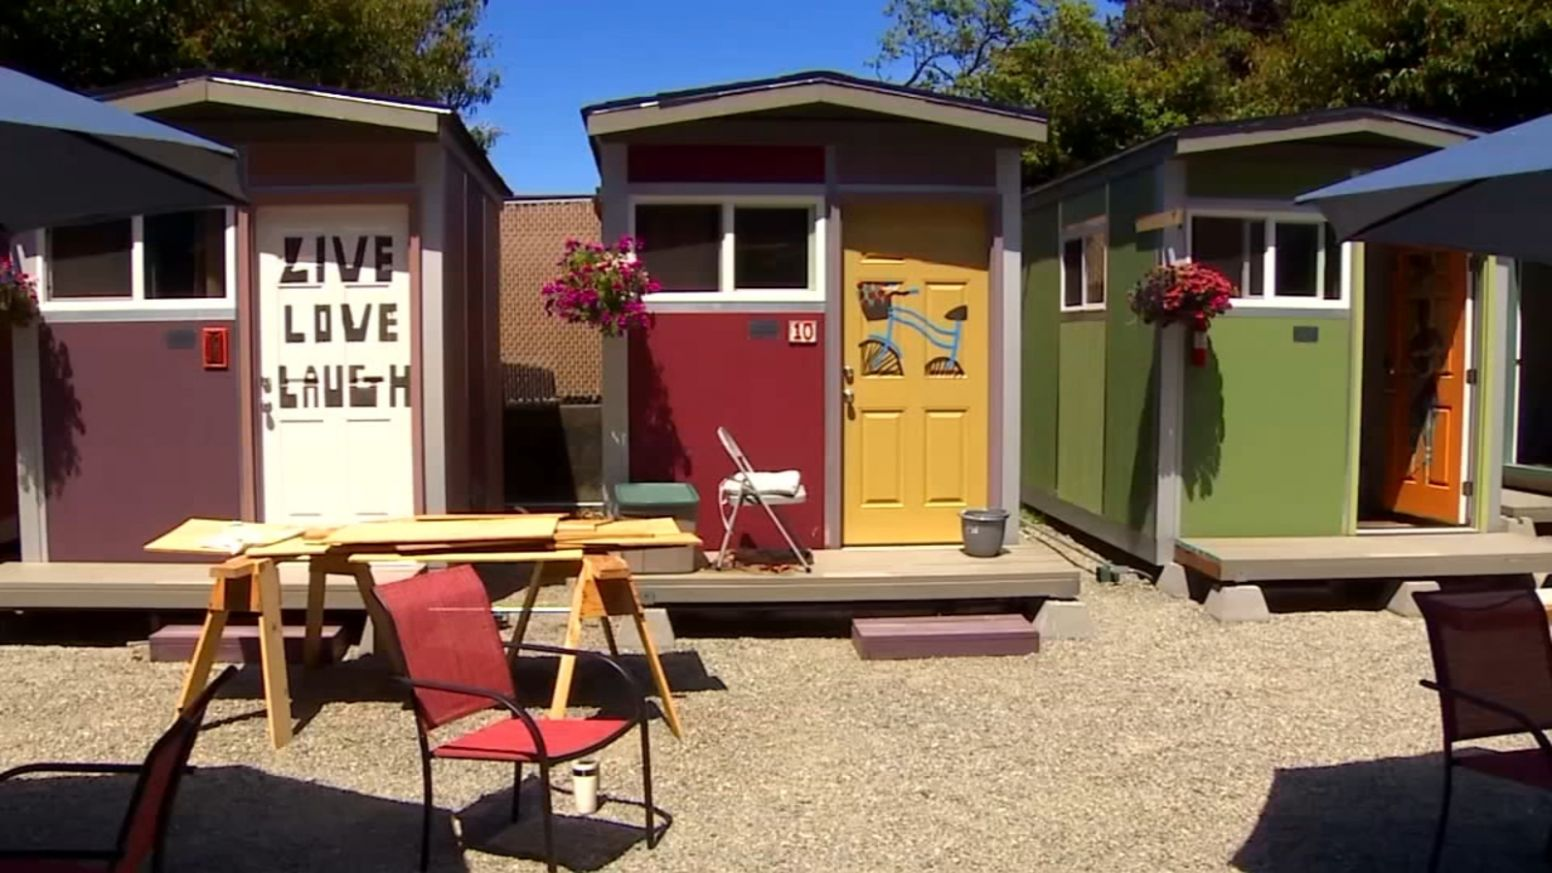 See inside Seattle's new tiny house village for homeless women